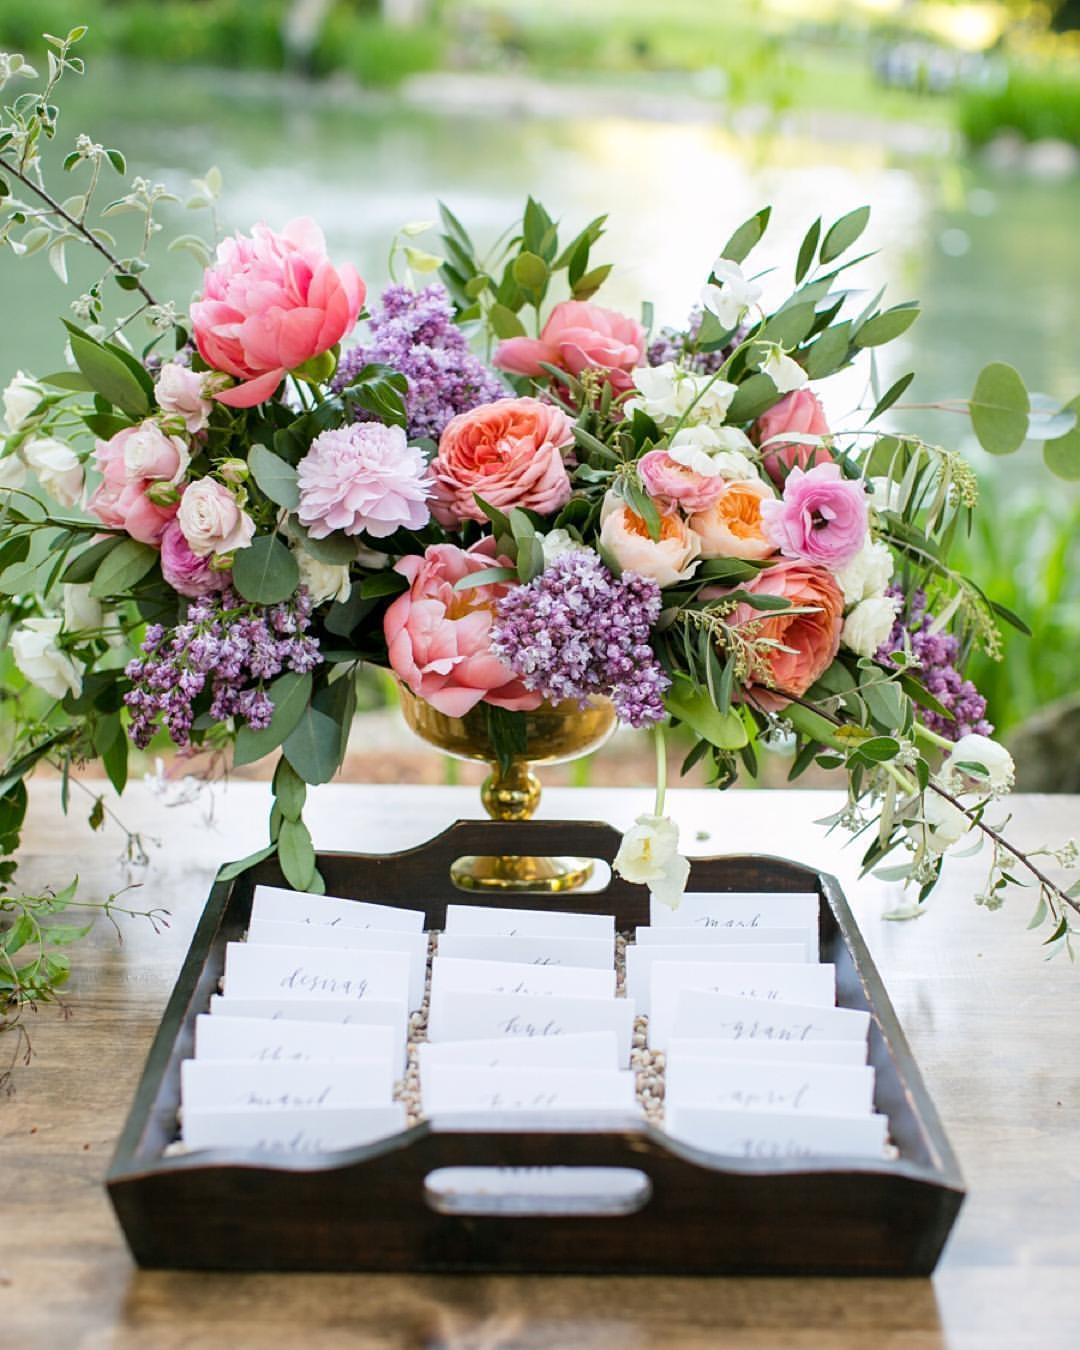 13 Unique Escort Card Display Ideas To Wow Your Guests